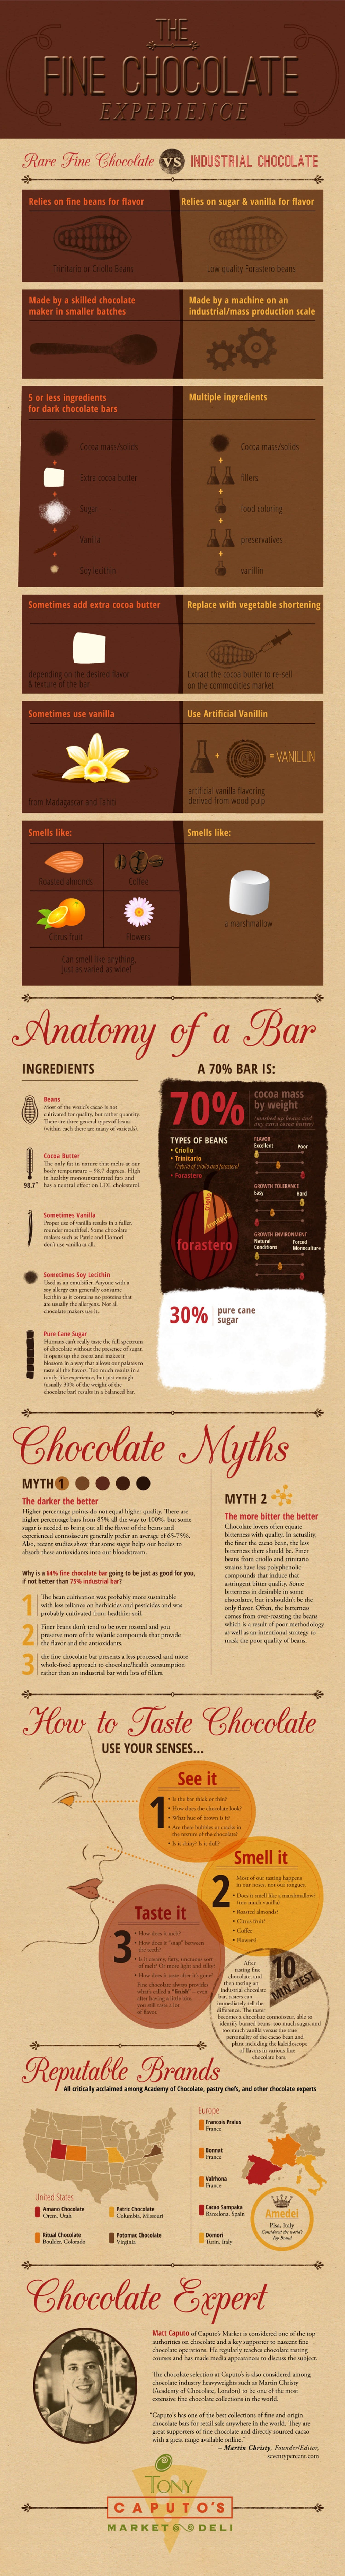 the fine chocolate experience infographic